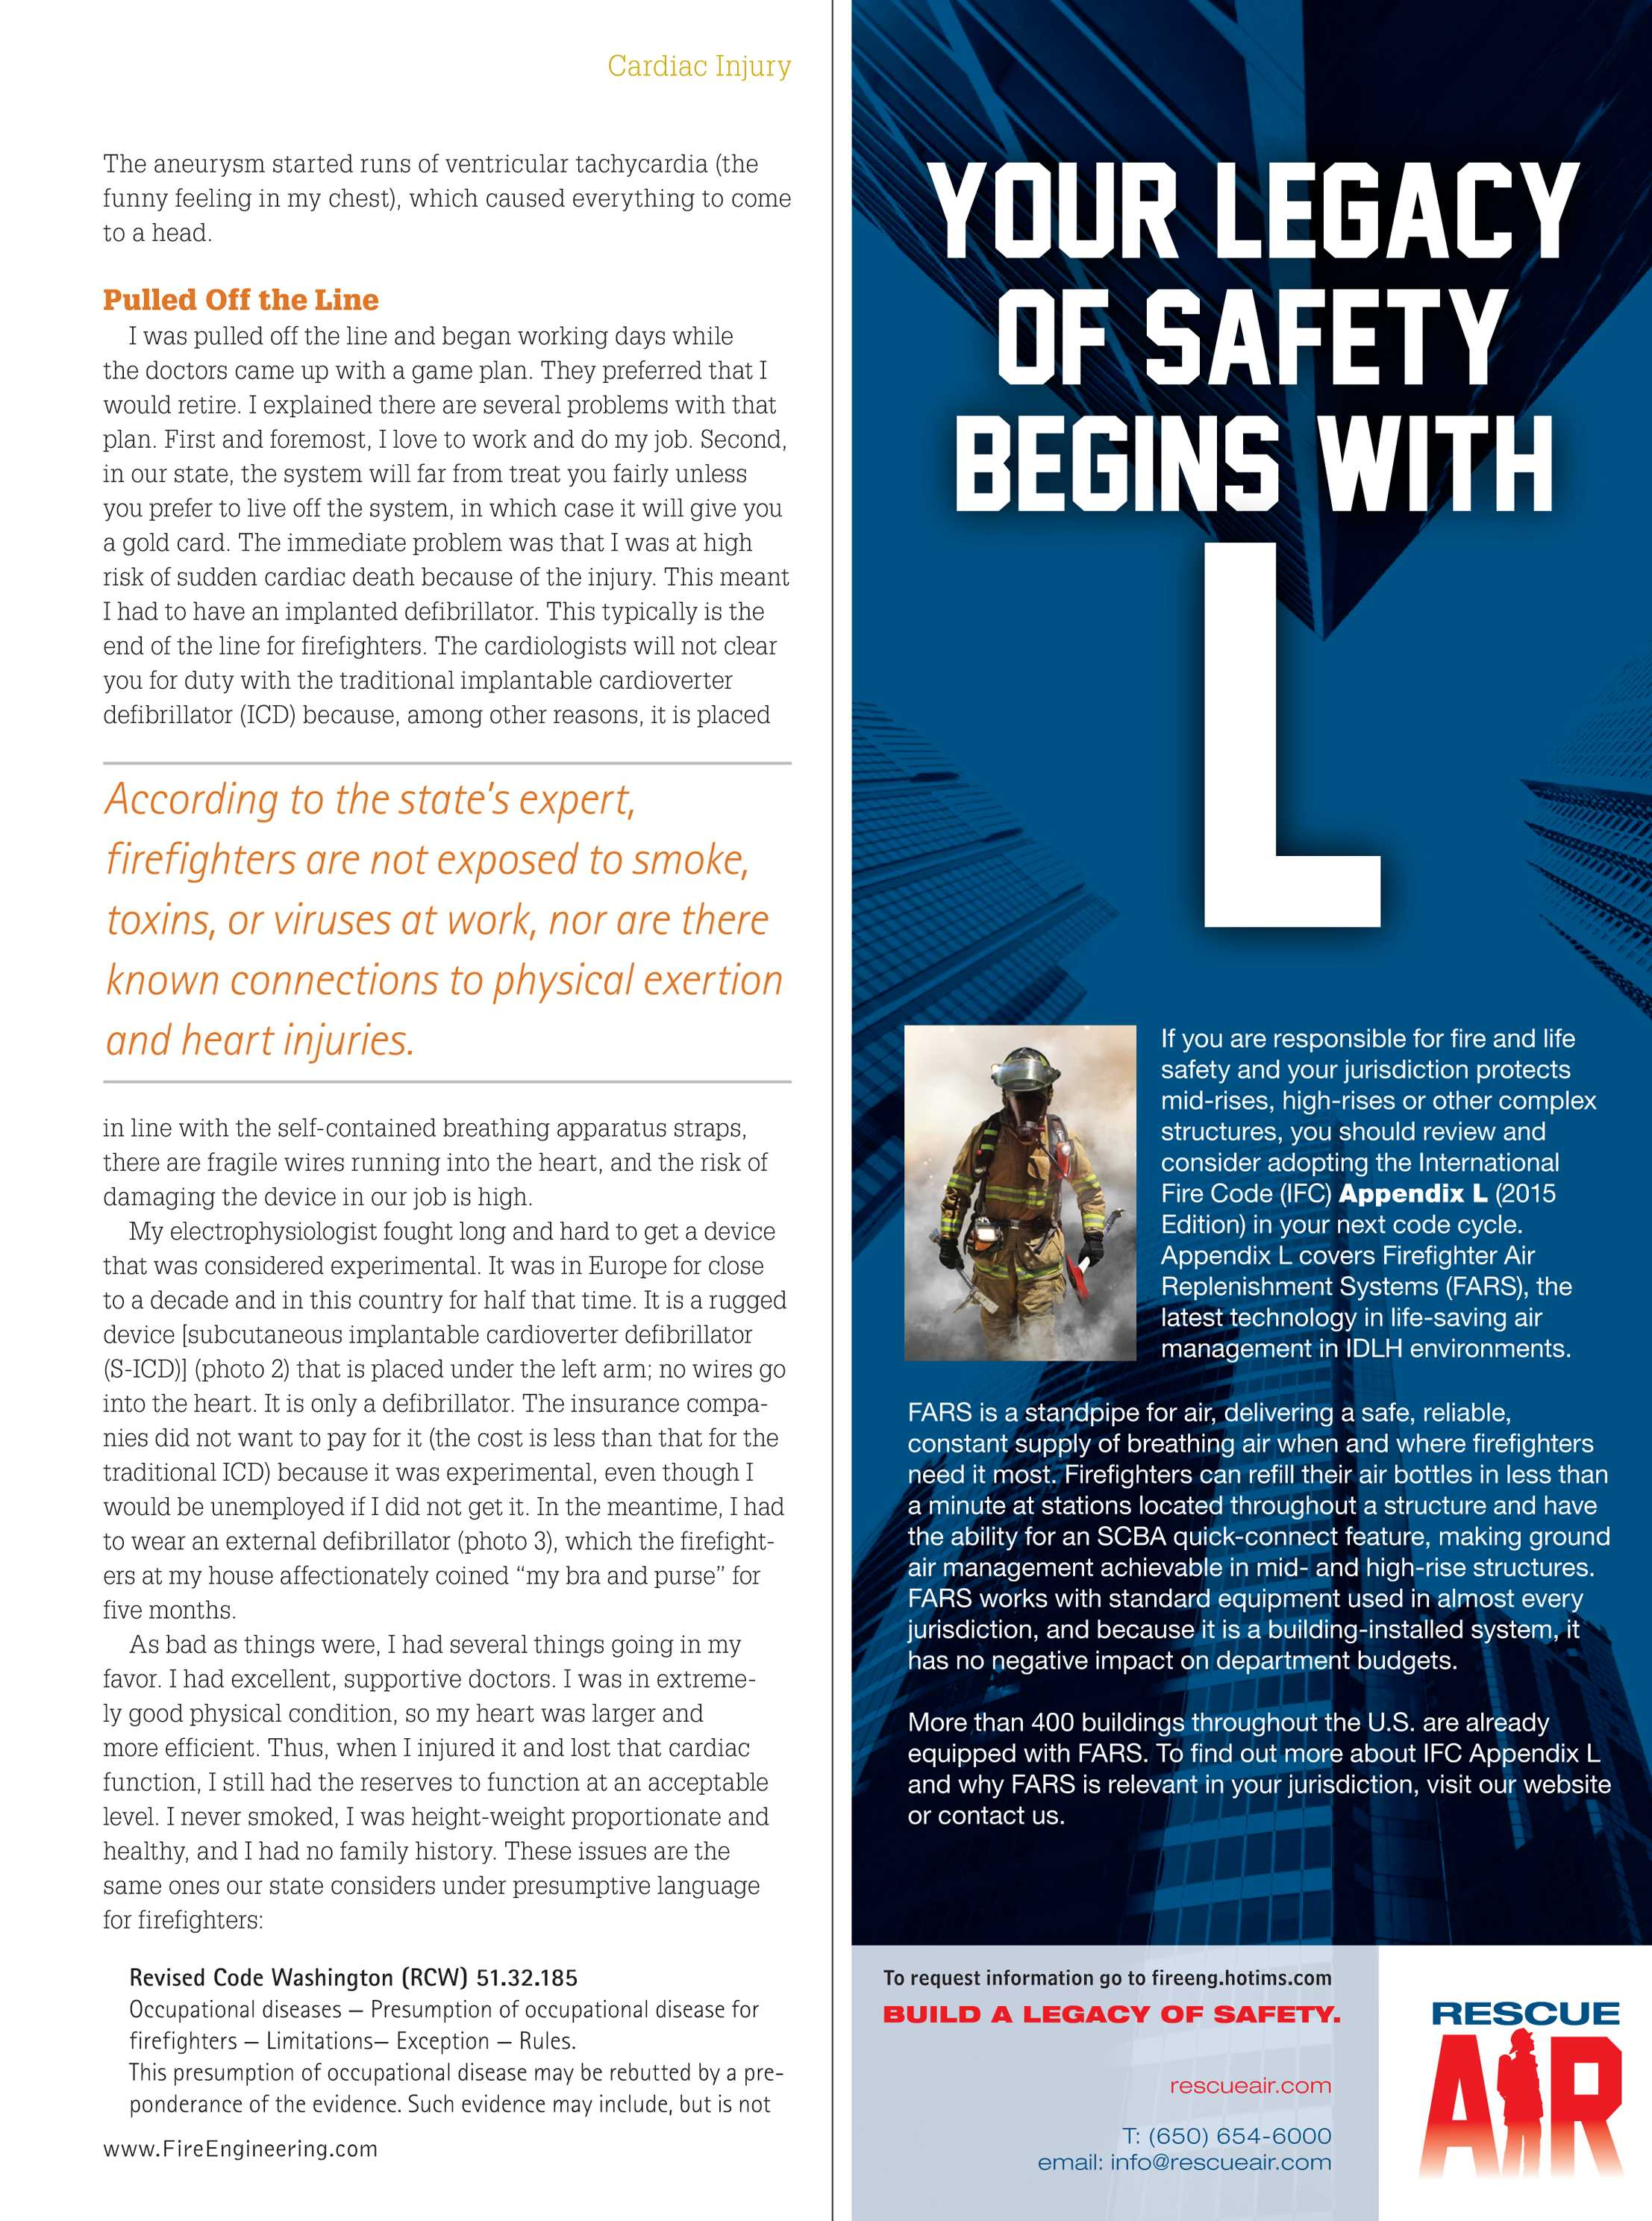 Fire Engineering - December 2015 - page 59